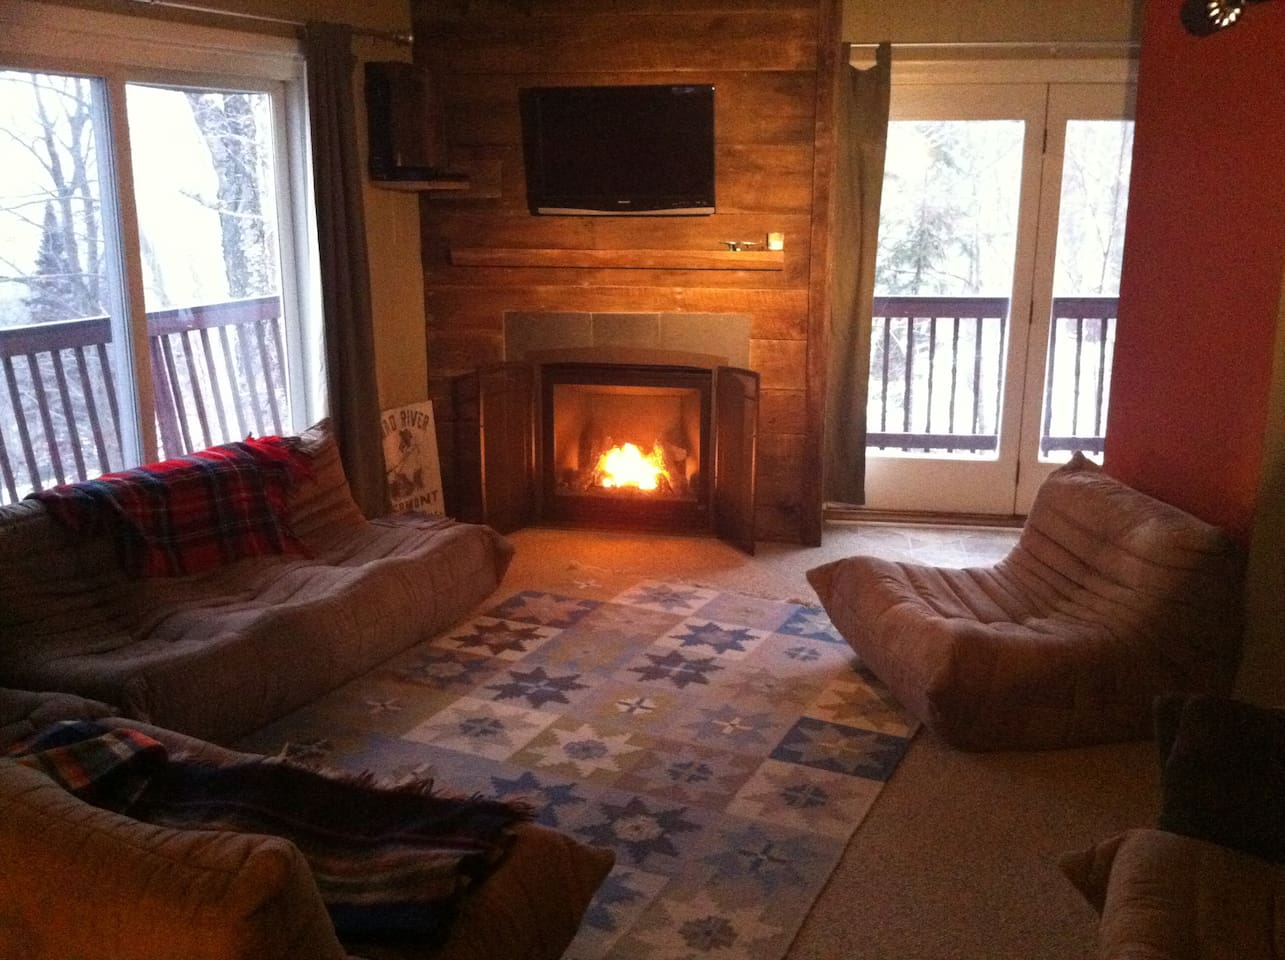 Living room offers lounge seating with premium cable, sound system, and an amazing fireplace.